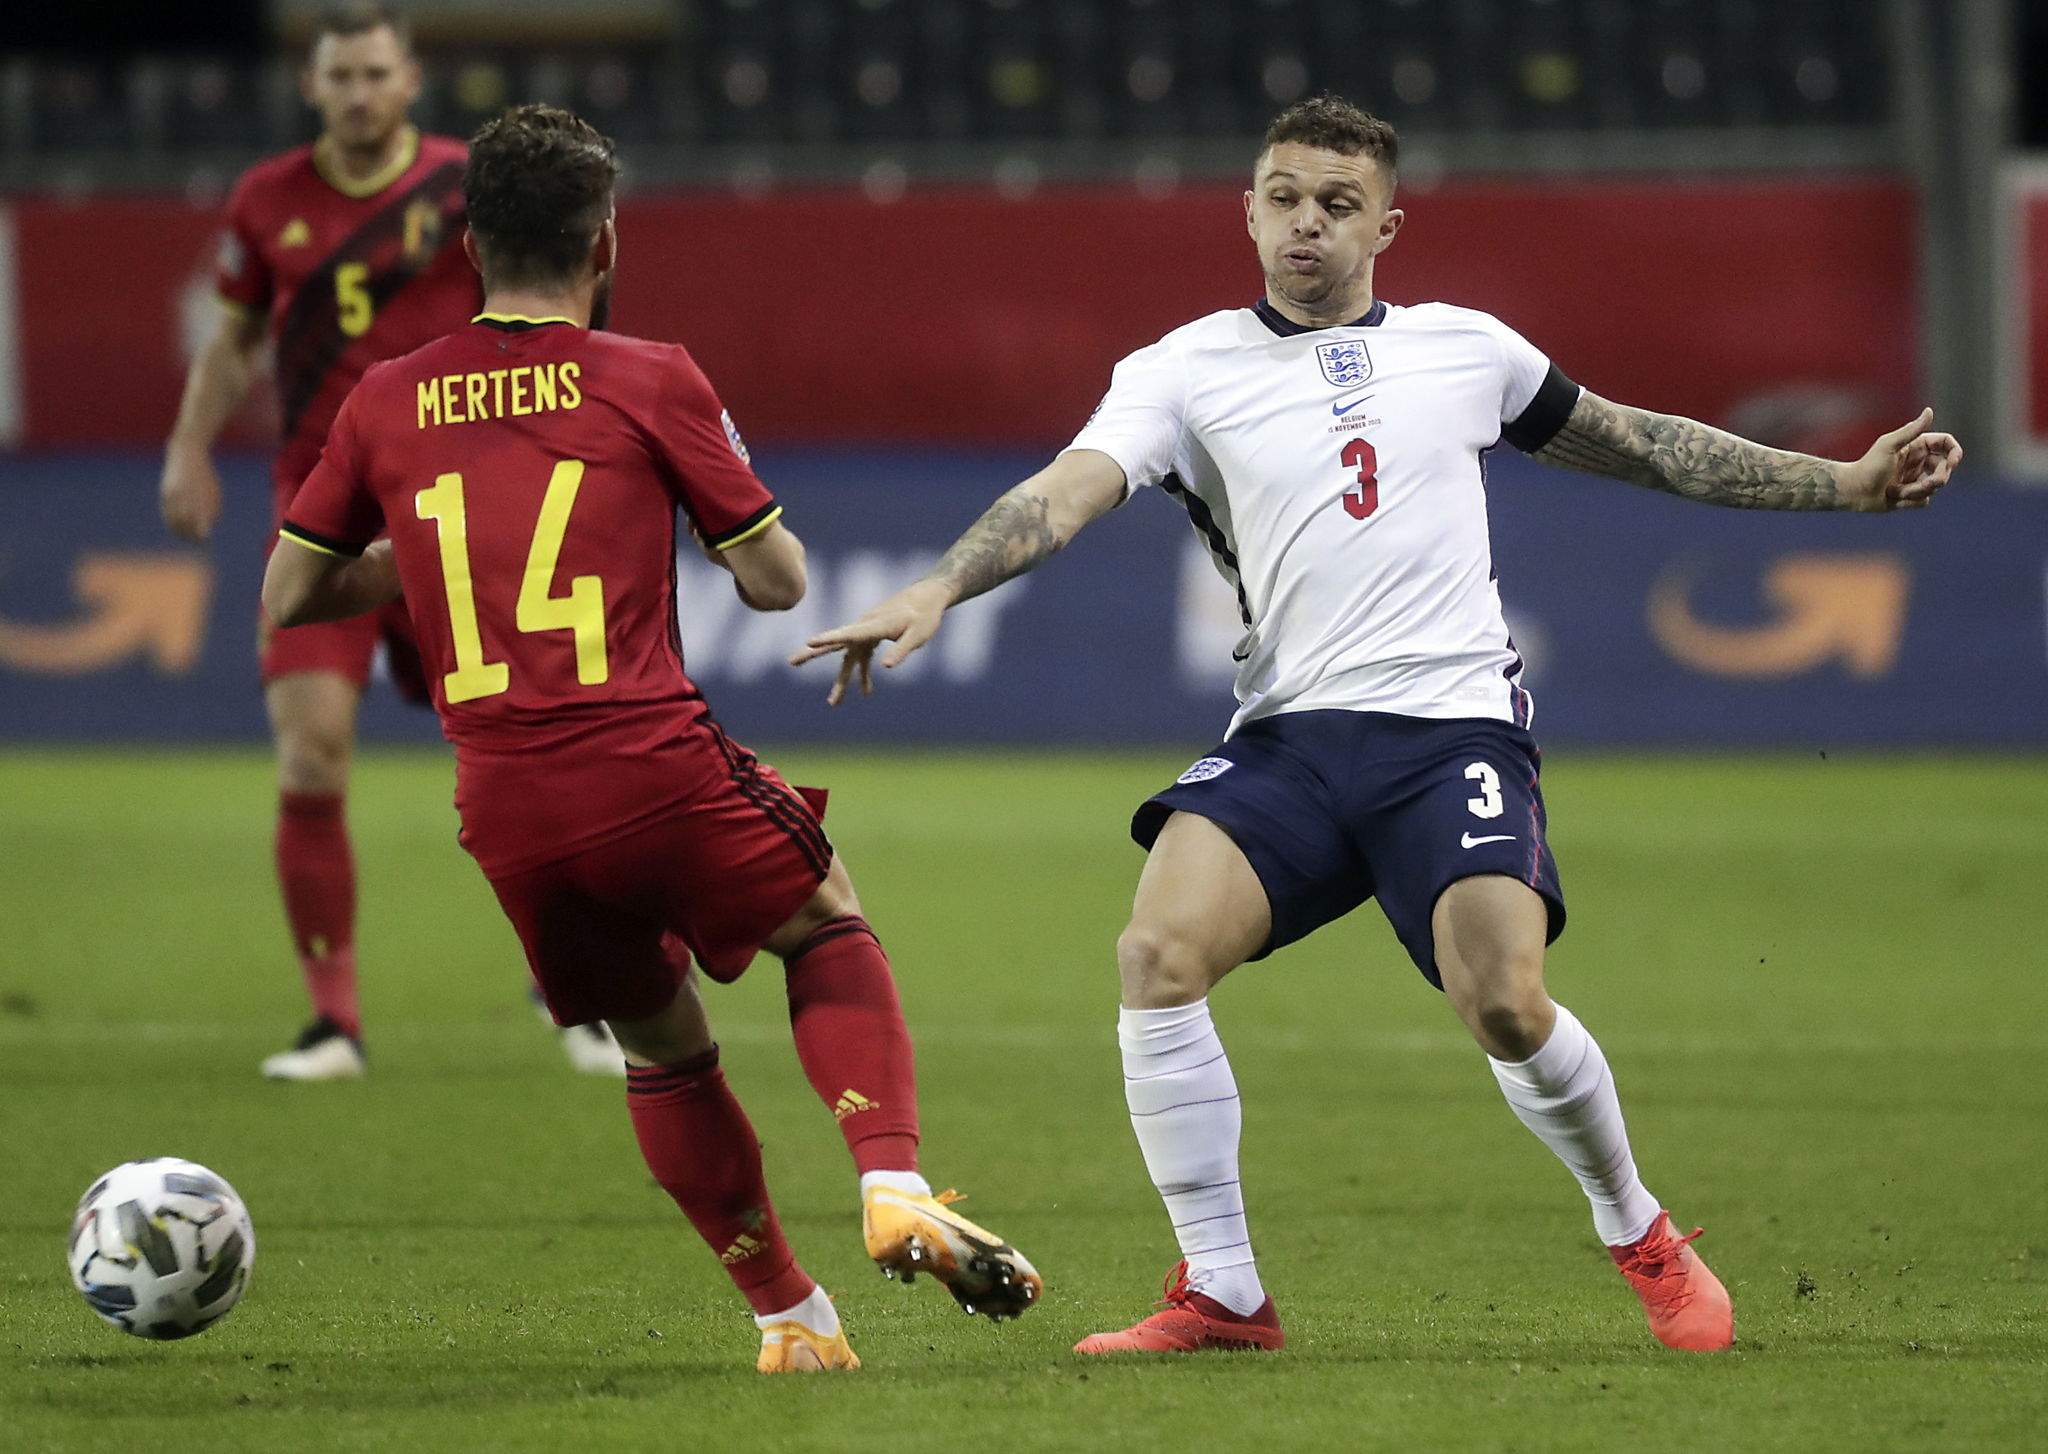 Leuven (Belgium), 15/11/2020.- Dries Mertens of Belgium and Kieran lt;HIT gt;Trippier lt;/HIT gt; of England (R) in action during the UEFA Nations League soccer match between Belgium and England in Leuven, Belgium, 15 November 2020. (Bélgica) EFE/EPA/STEPHANIE LECOCQ